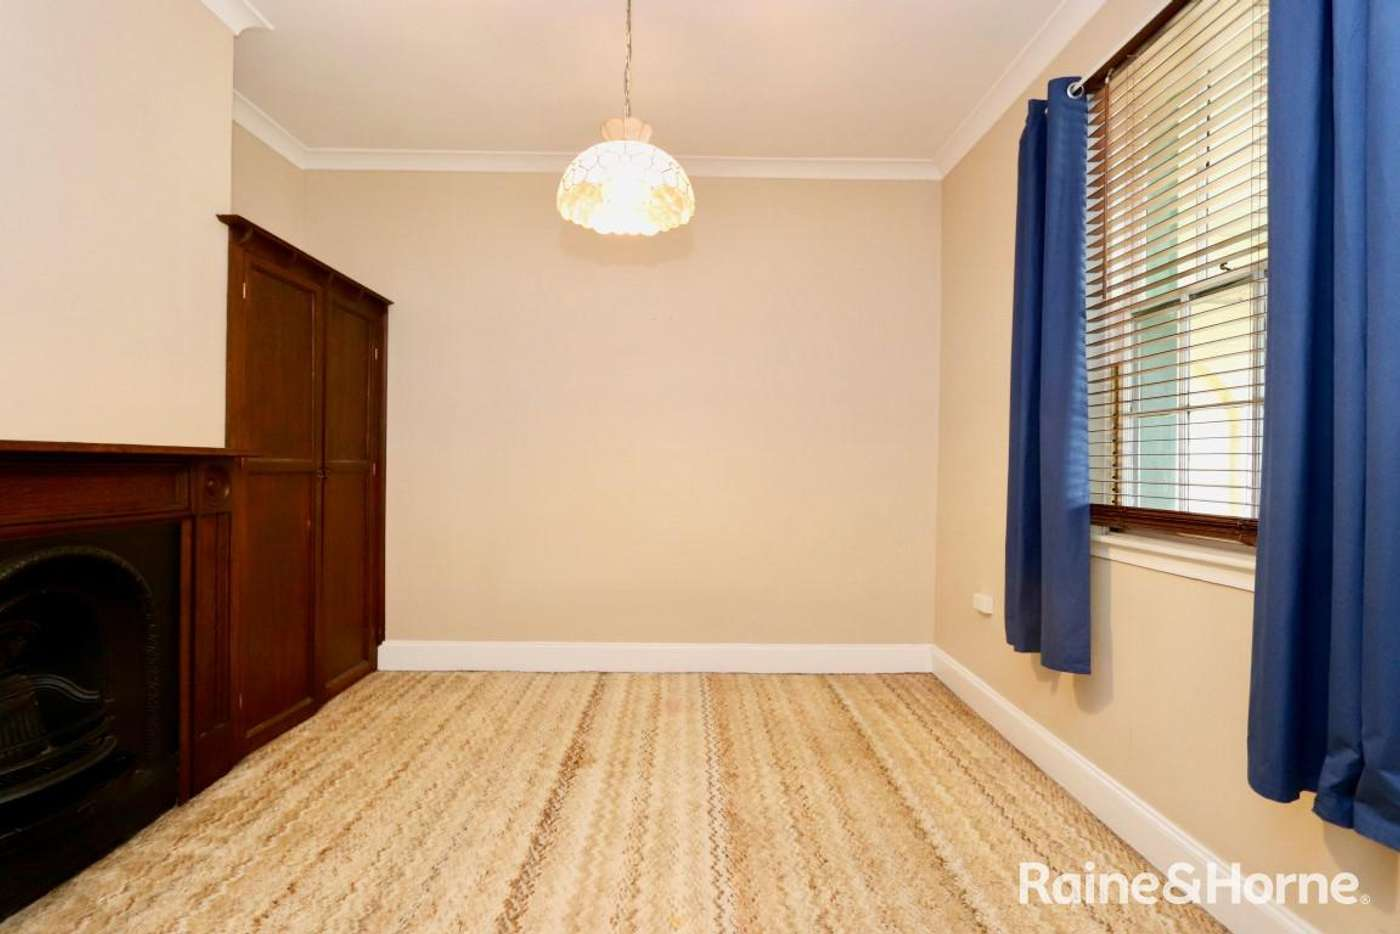 Sixth view of Homely house listing, 171 Rankin St, Bathurst NSW 2795